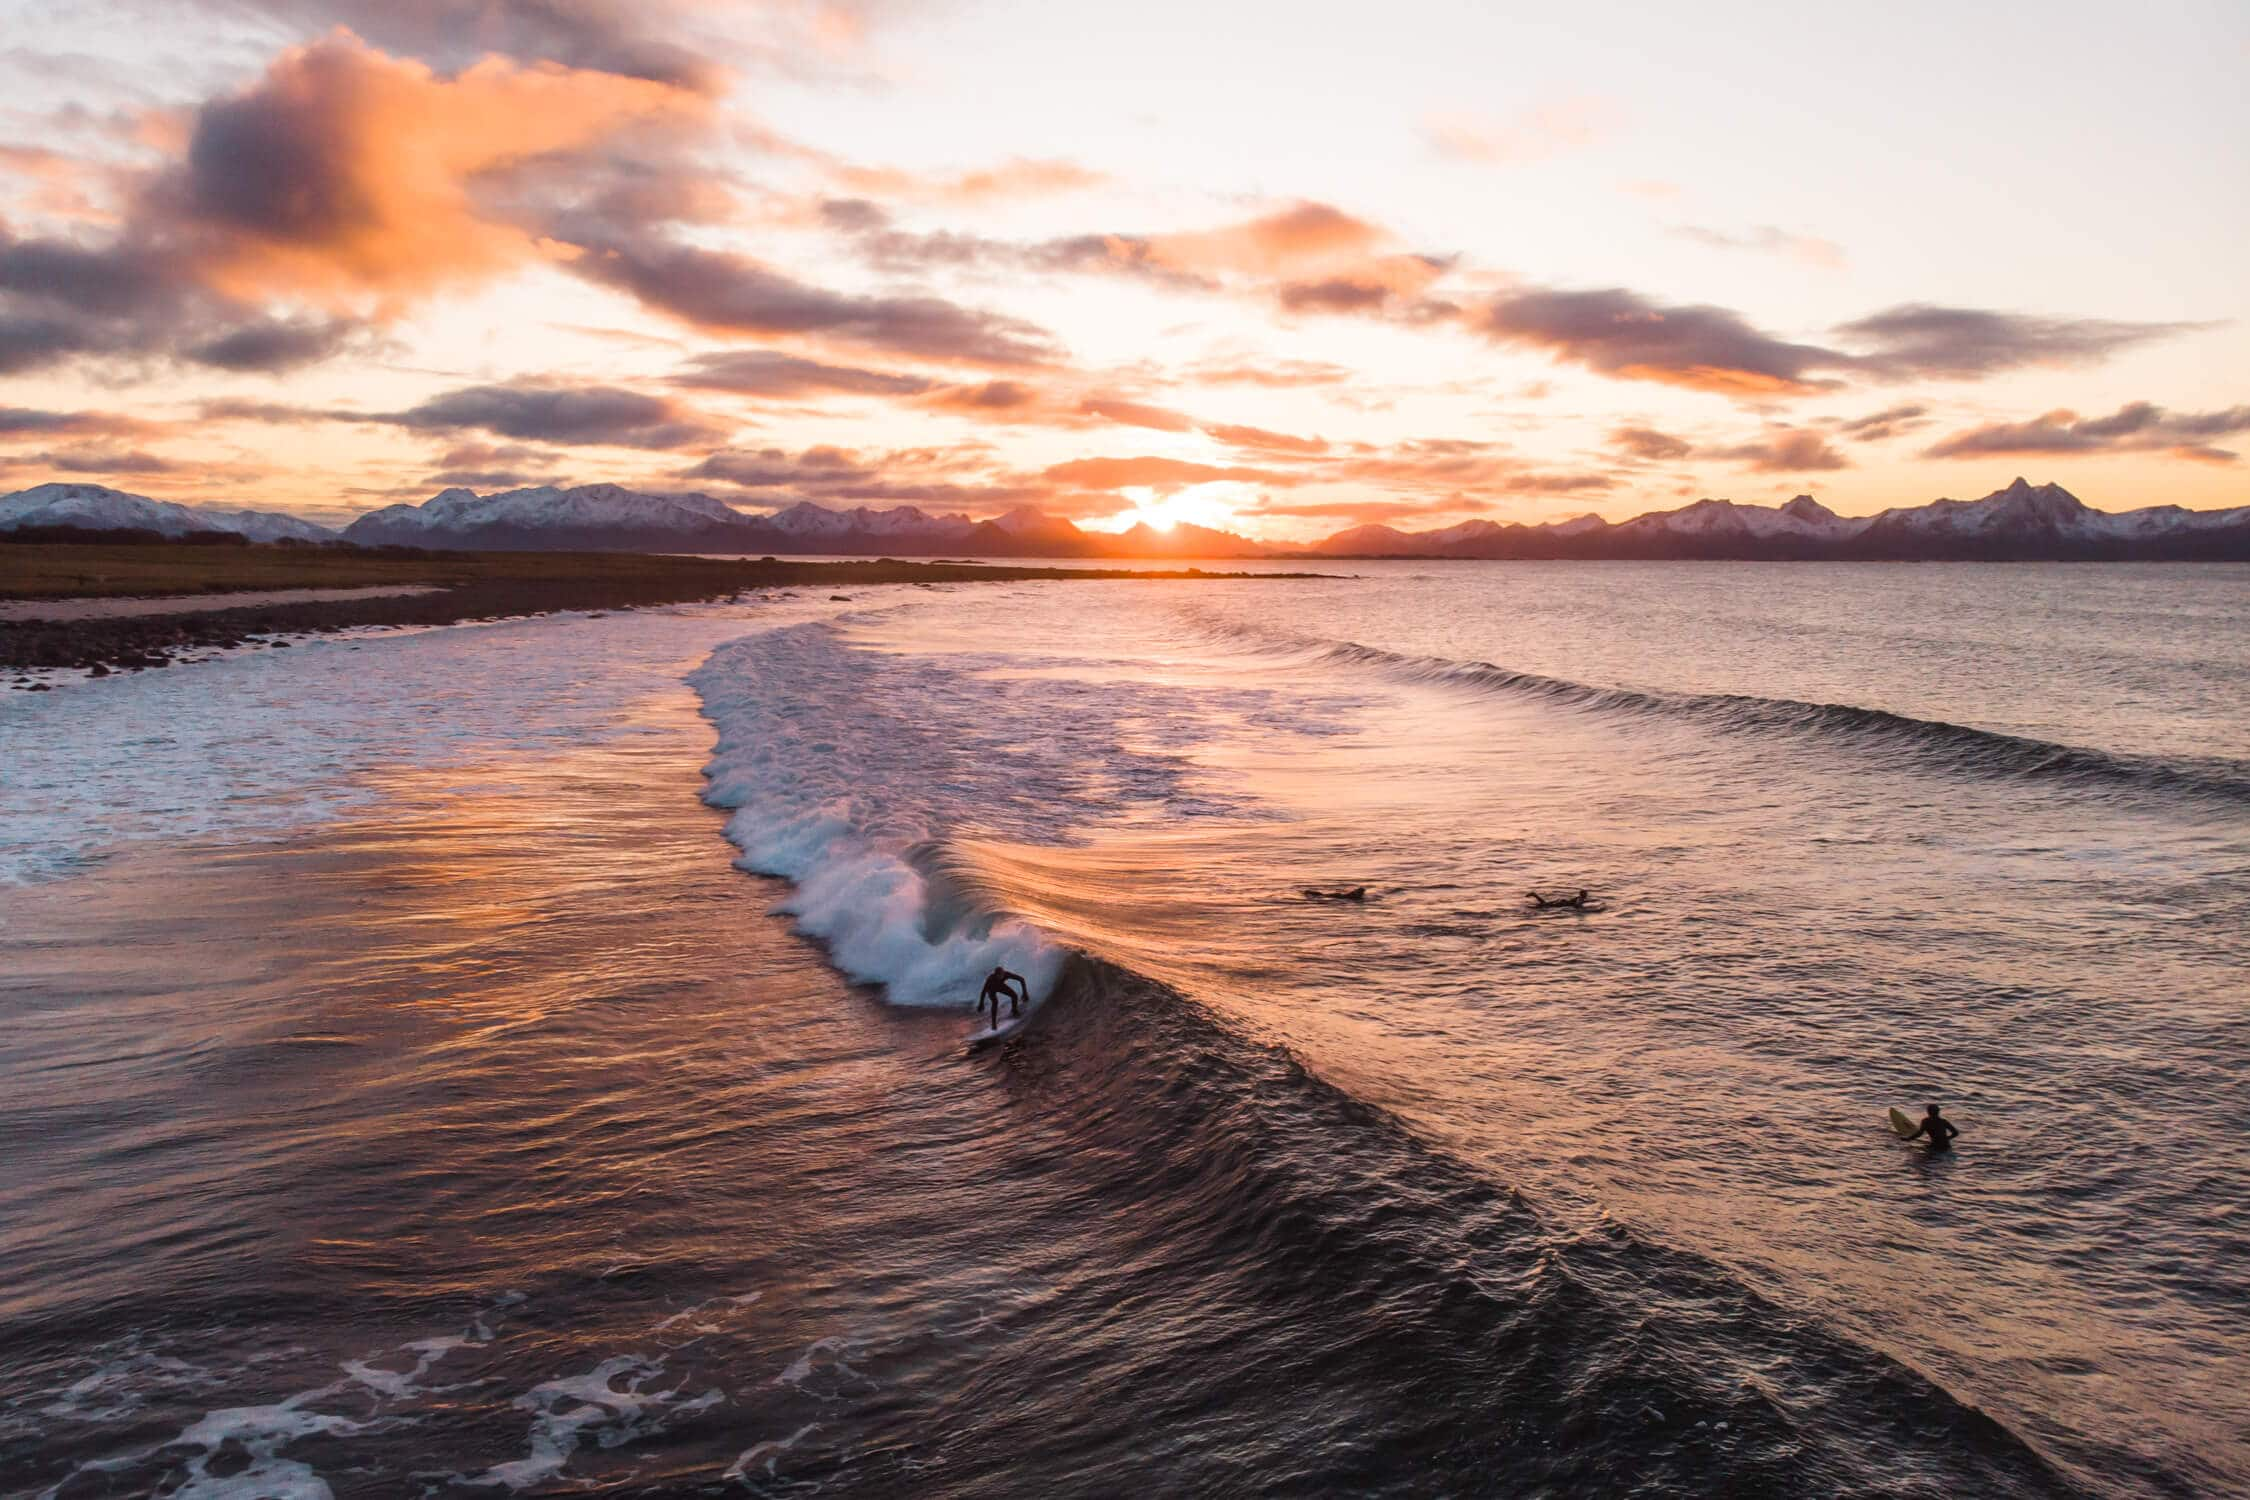 Best places to see and things to do in Norway - Arctic surfing #bucketlist #travelinspo #norway #surfing